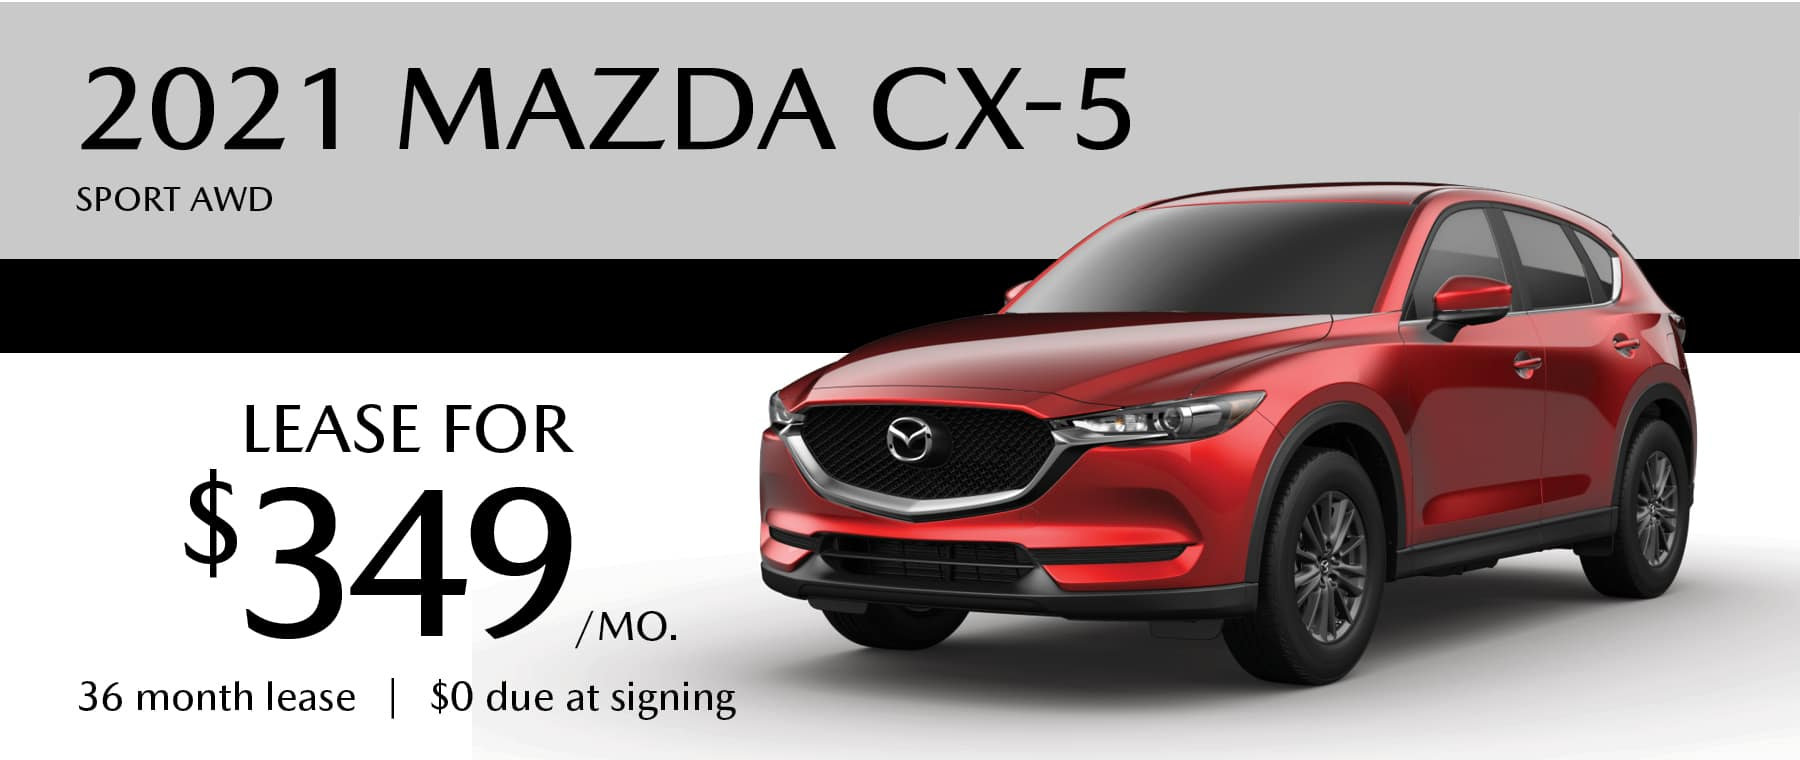 2020 MAZDA CX-5 Sport AWD Lease offer in Greensburg PA